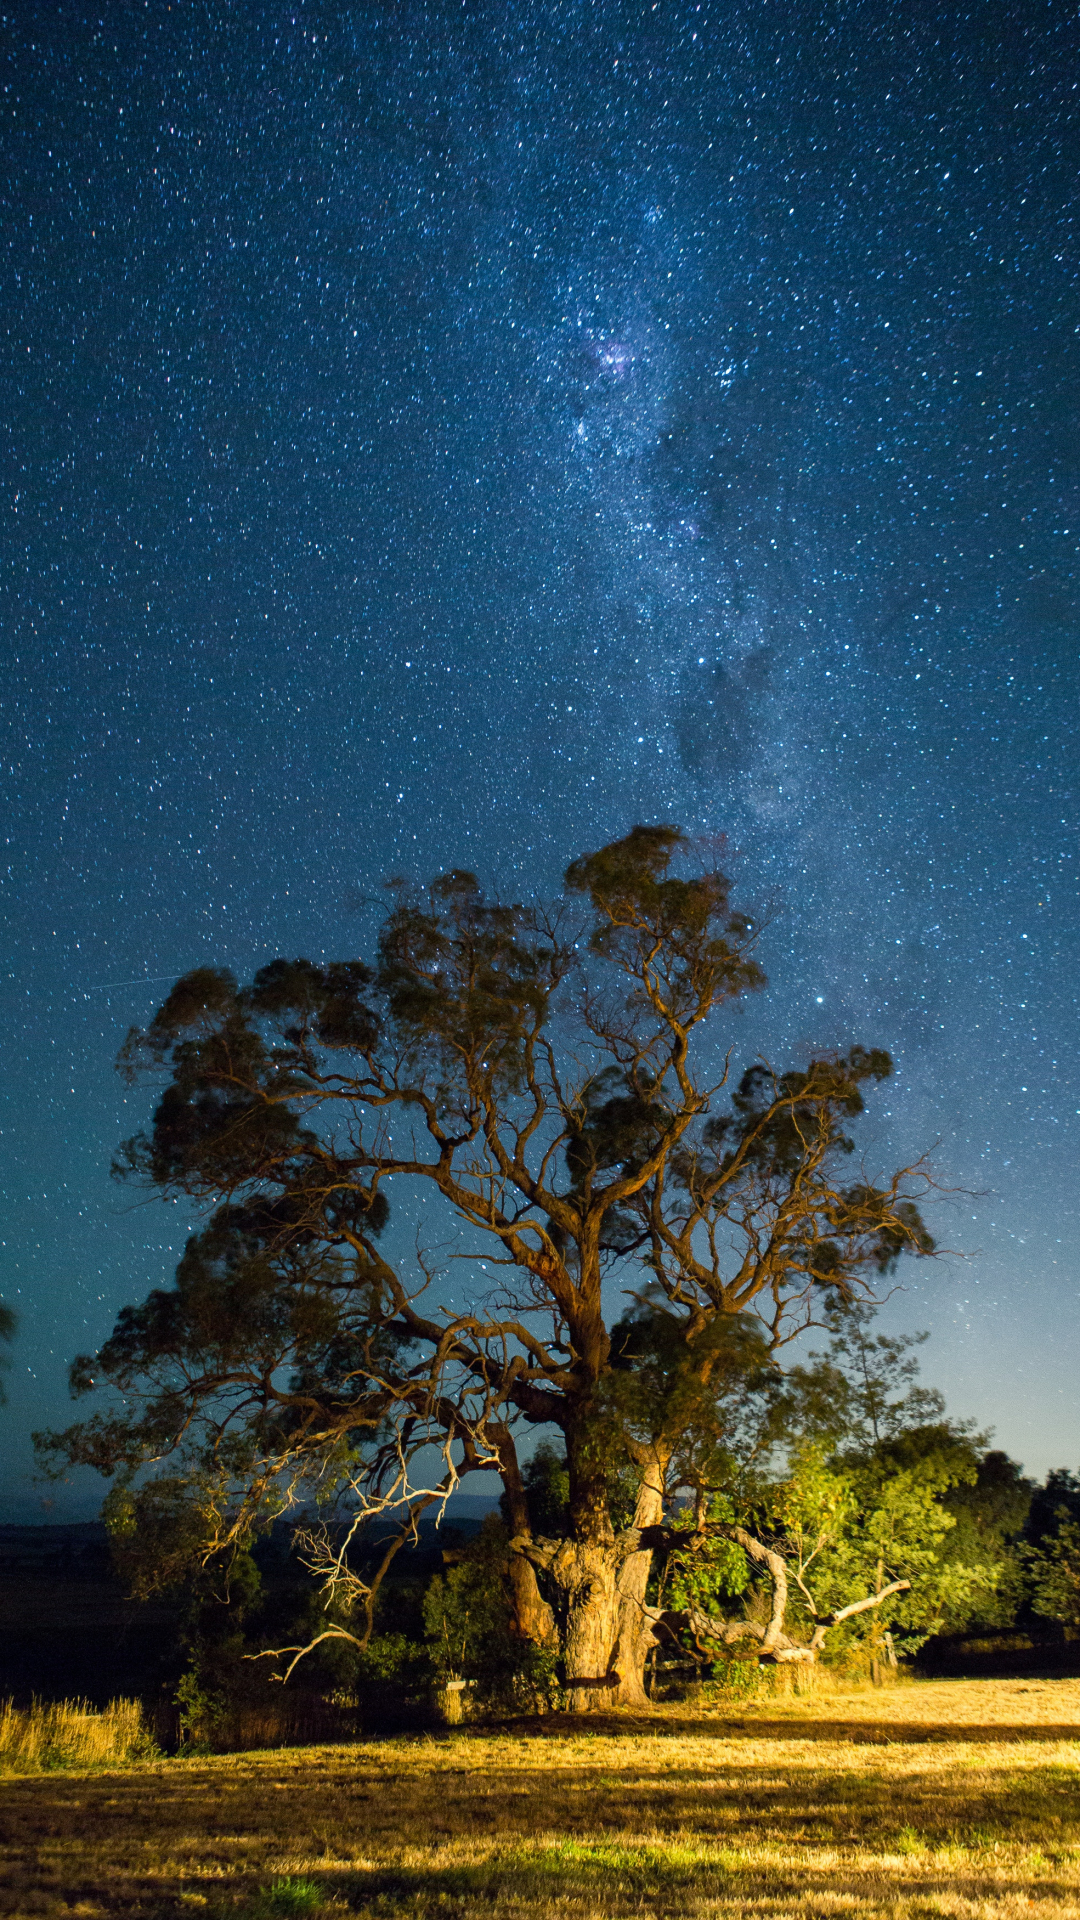 Tree, Star, Sky And Milky Iphone Wallpaper - If You Realize How Powerful Your Thoughts , HD Wallpaper & Backgrounds